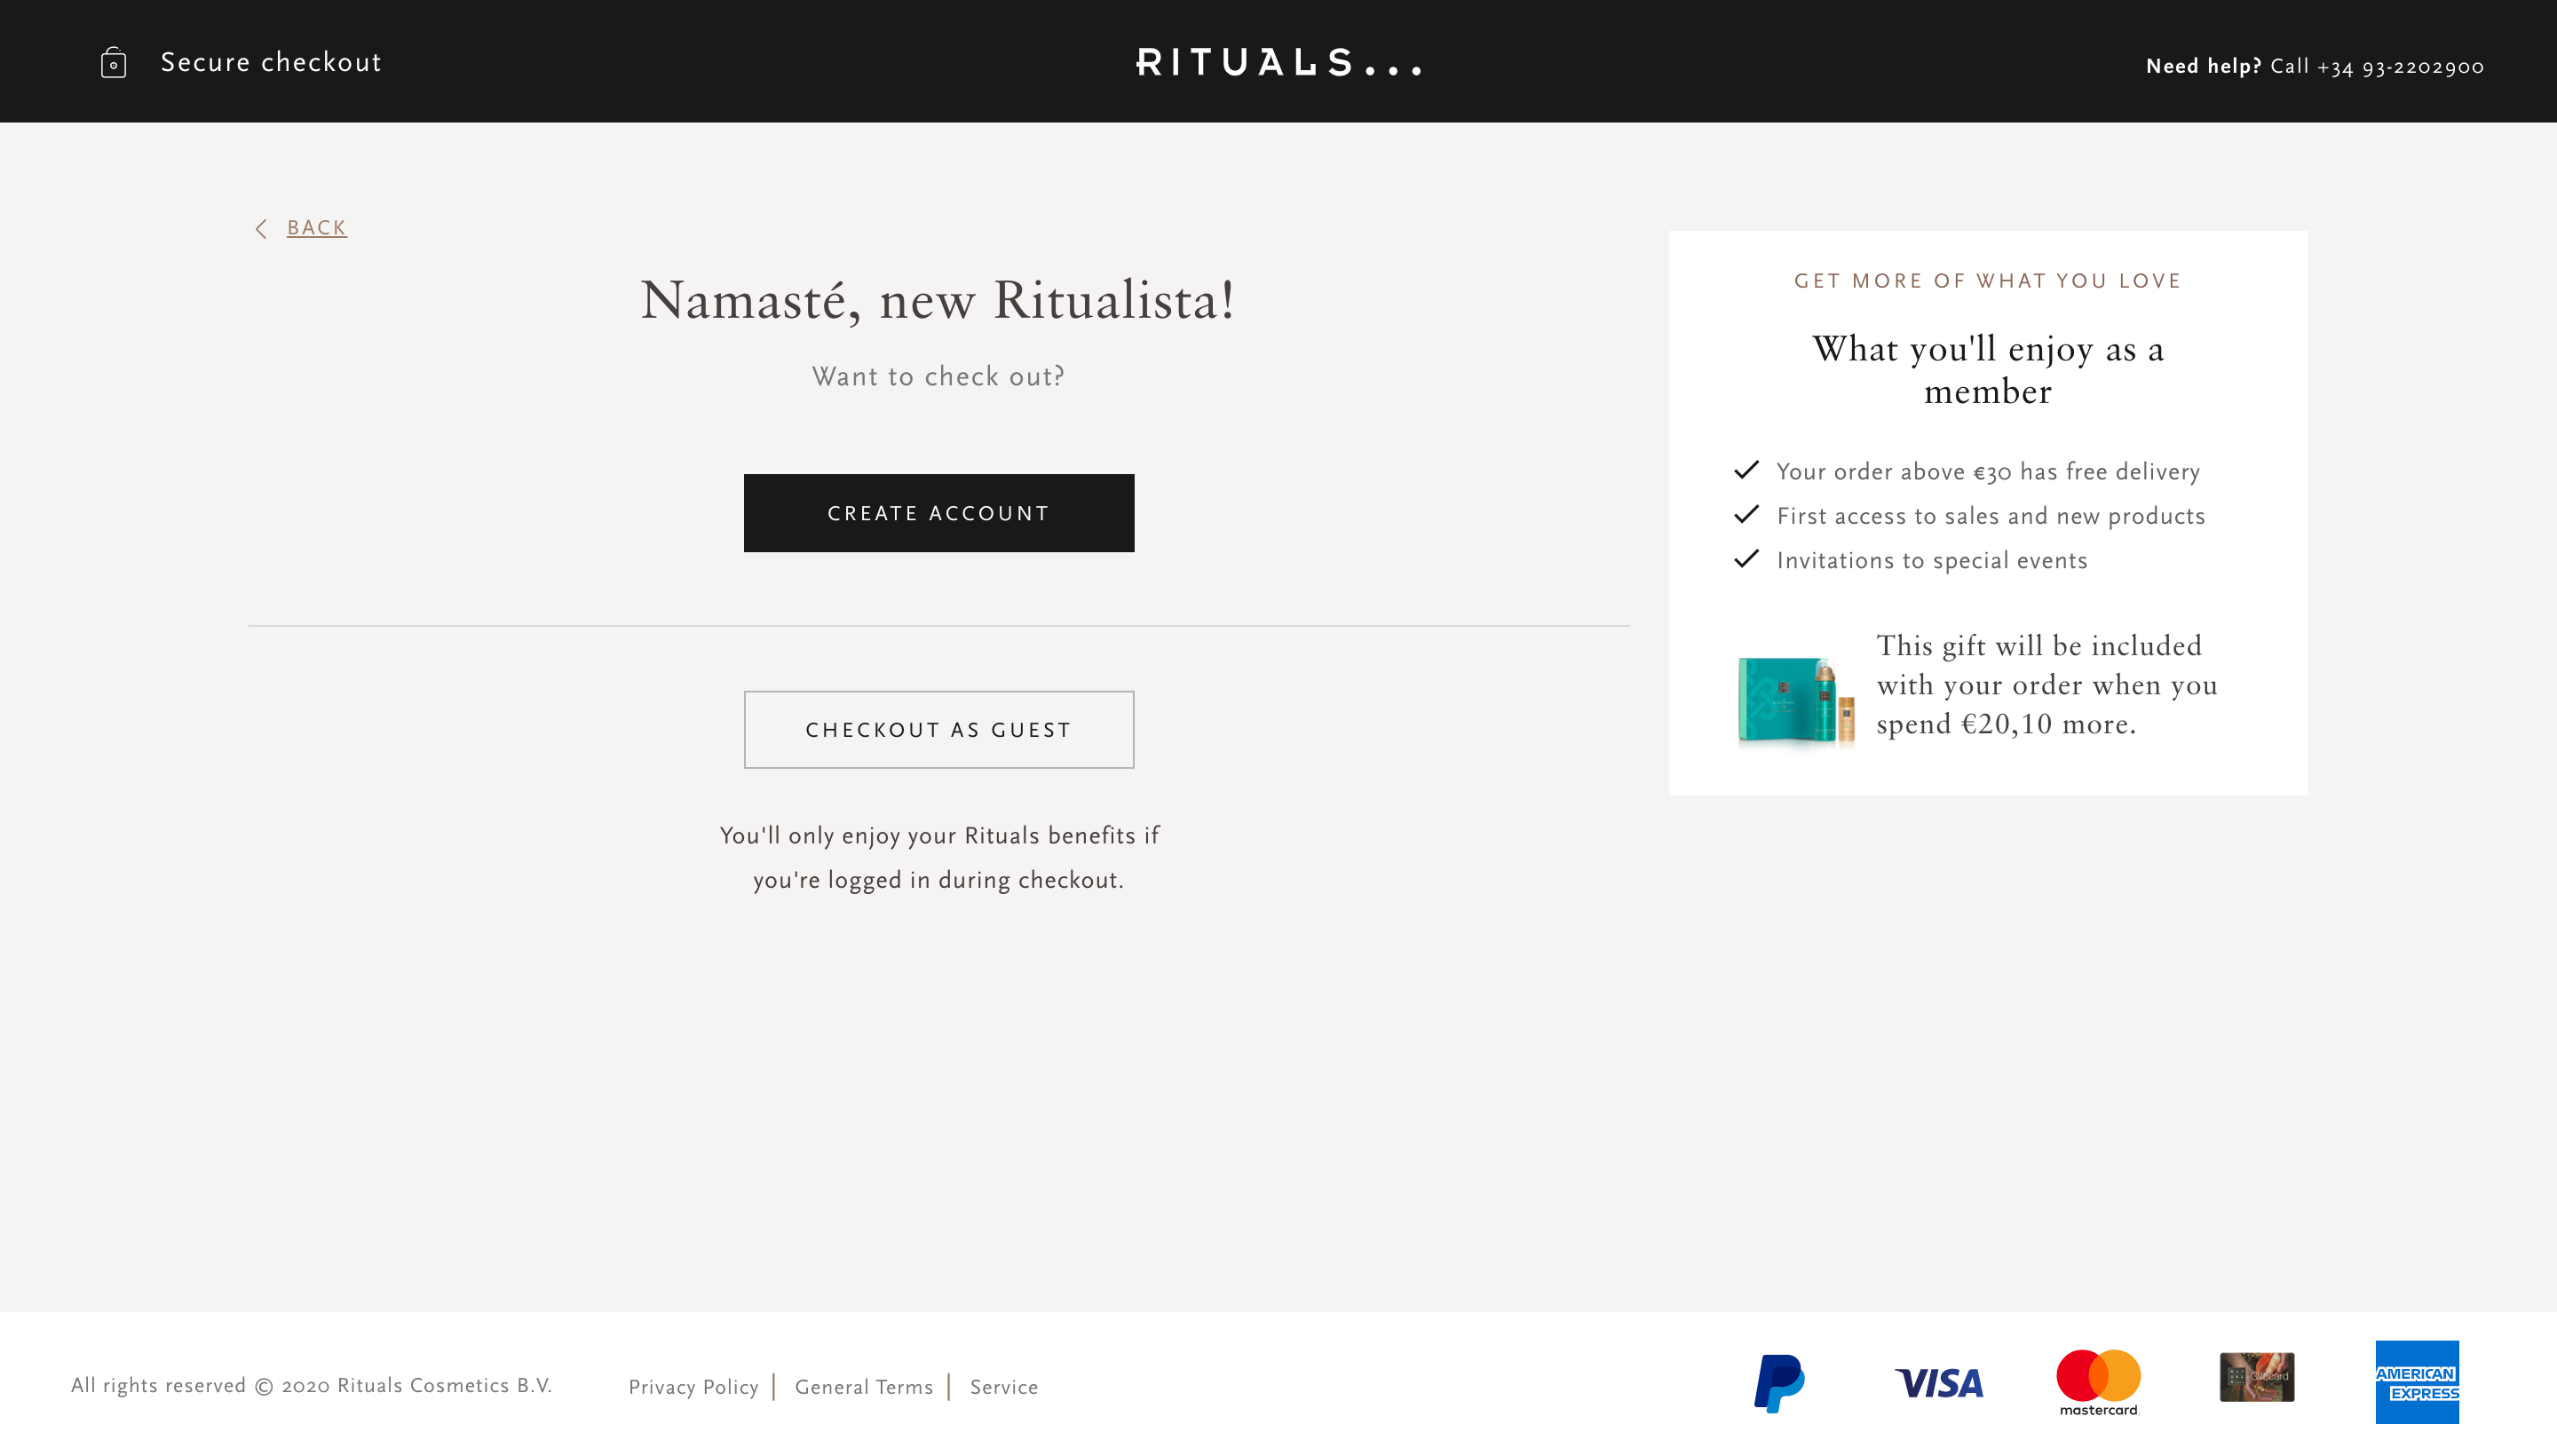 Rituals' checkout form - Create an account or checkout as guest